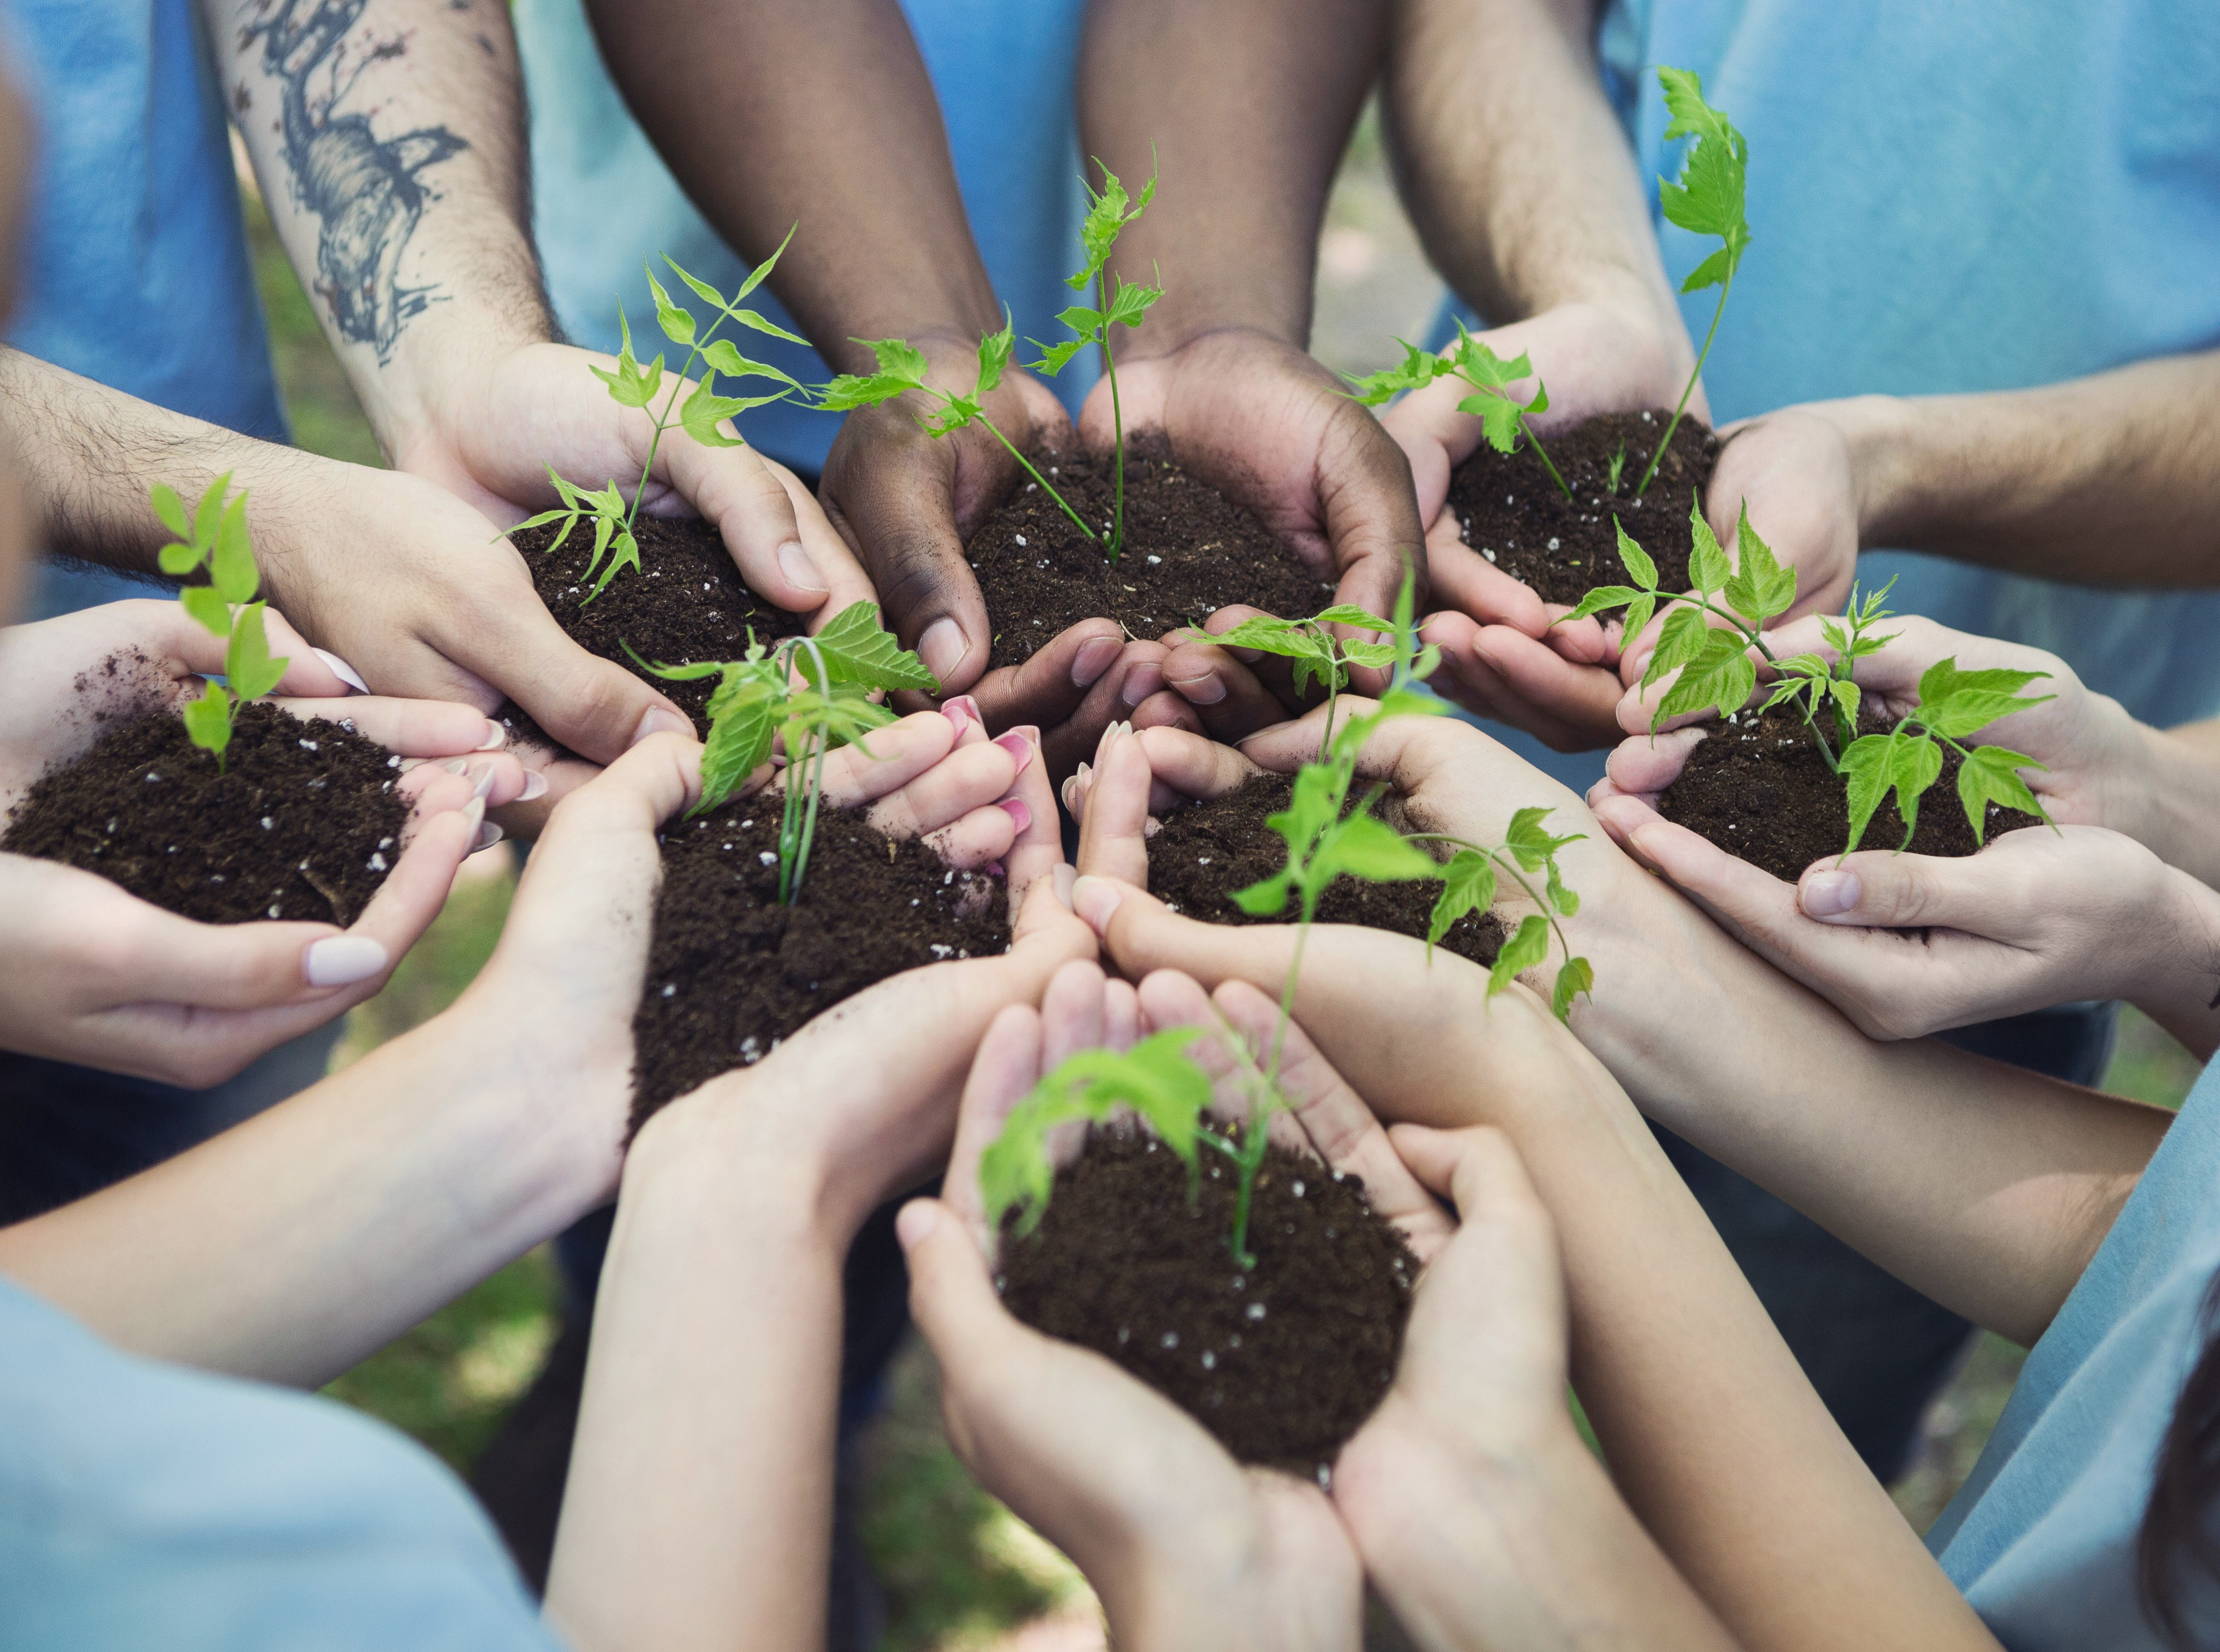 8 pairs of hands held out in a circle, each holding soil and a seedling tree, representing socially responsible businesses